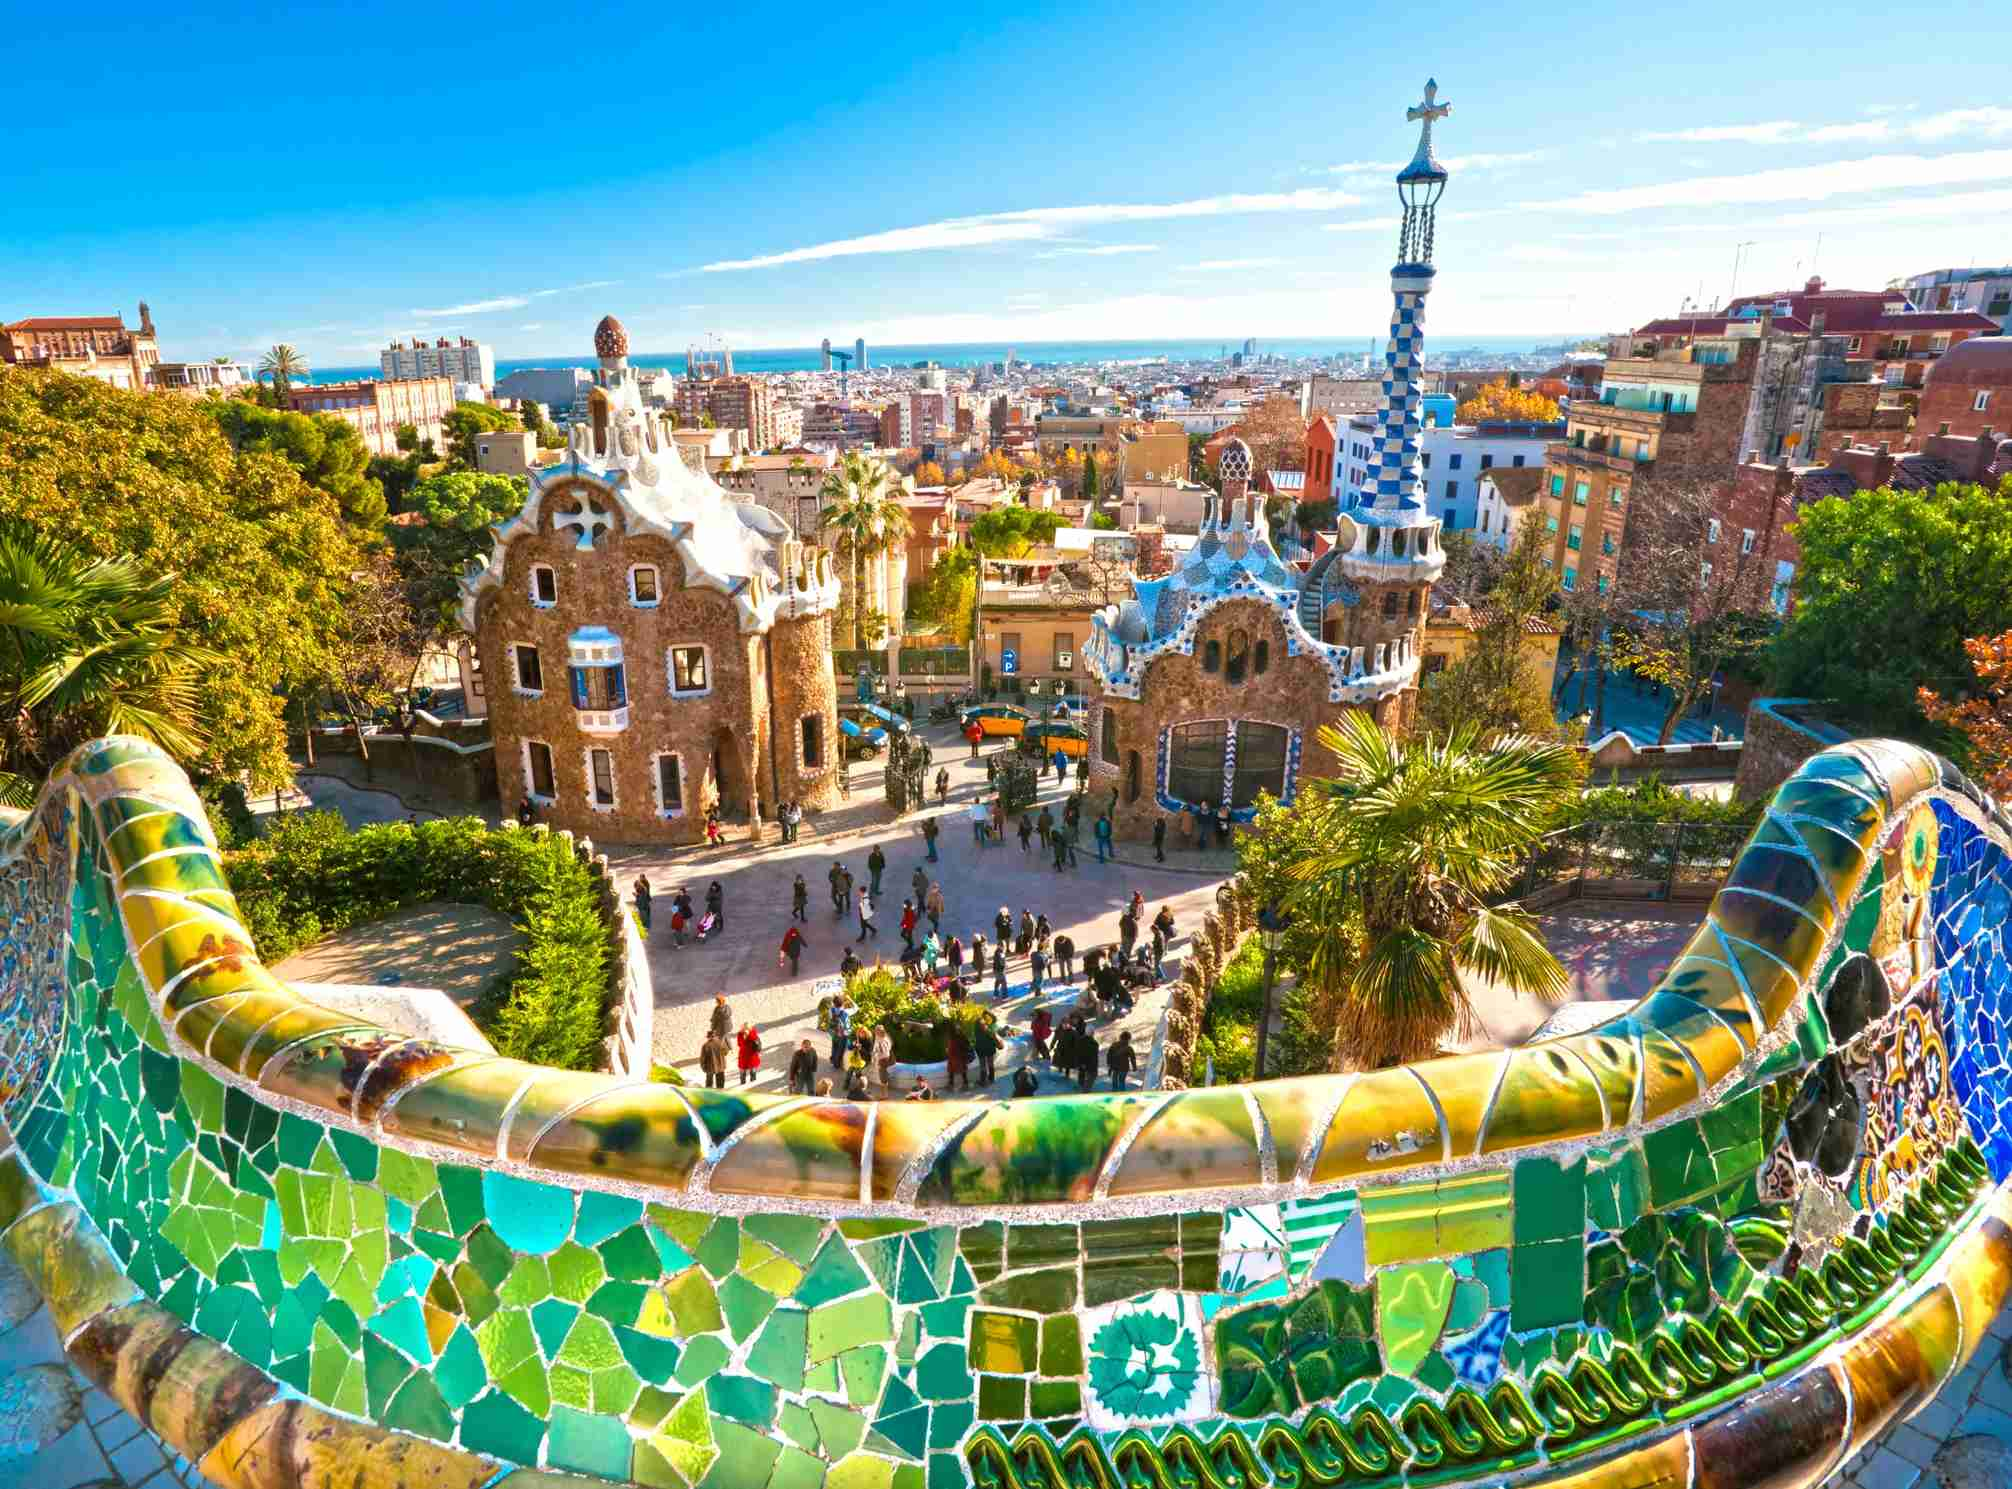 Park Guell in Barcelona, Spain. (Photo by MasterLu/Getty Images)